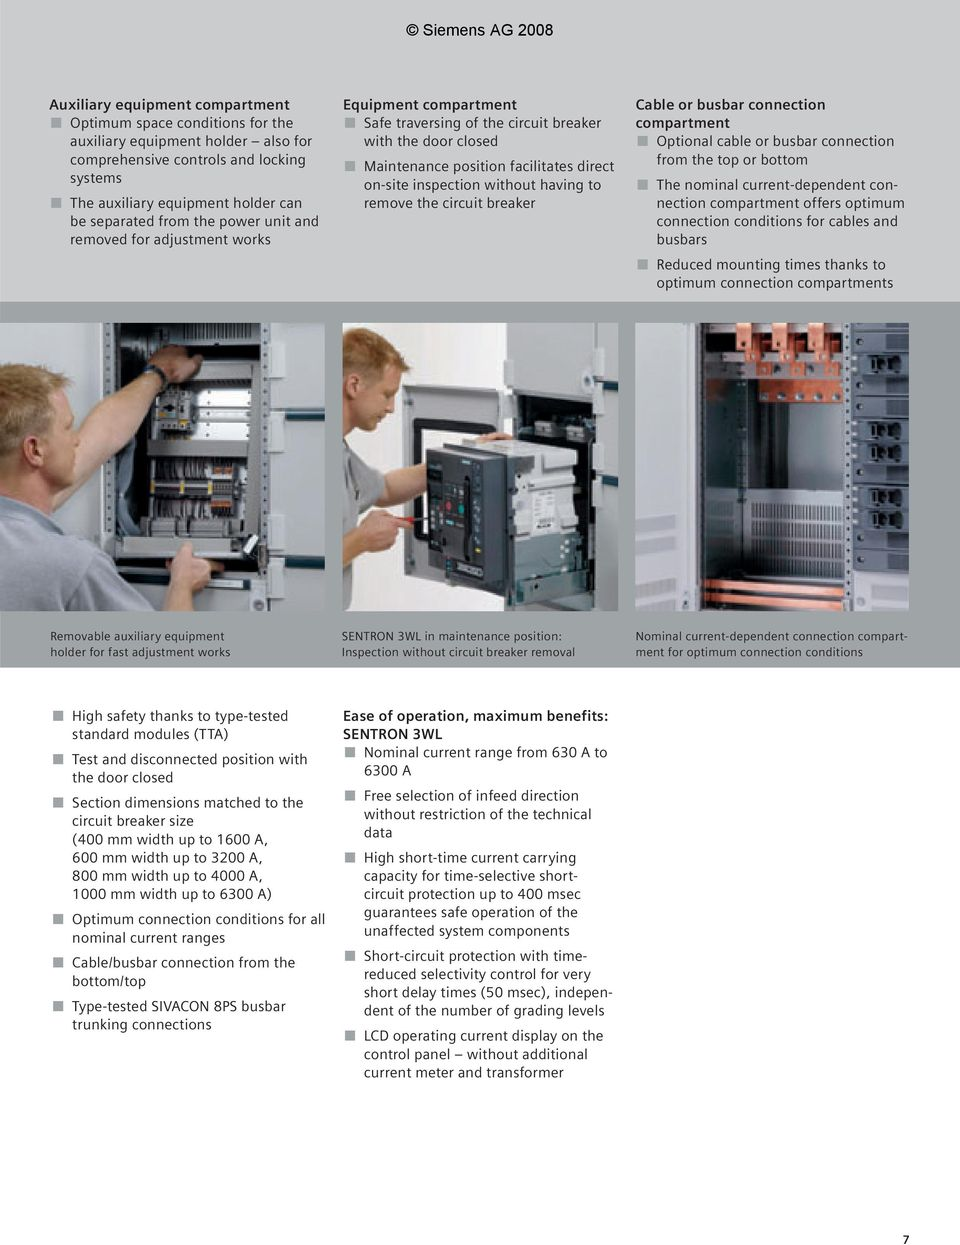 The Low Voltage Switchboard That Sets New Standards Pdf Circuit Breakers In Off Position Without Locking Out An Entire Having To Remove Breaker Cable Or Busbar Connection Compartment Optional